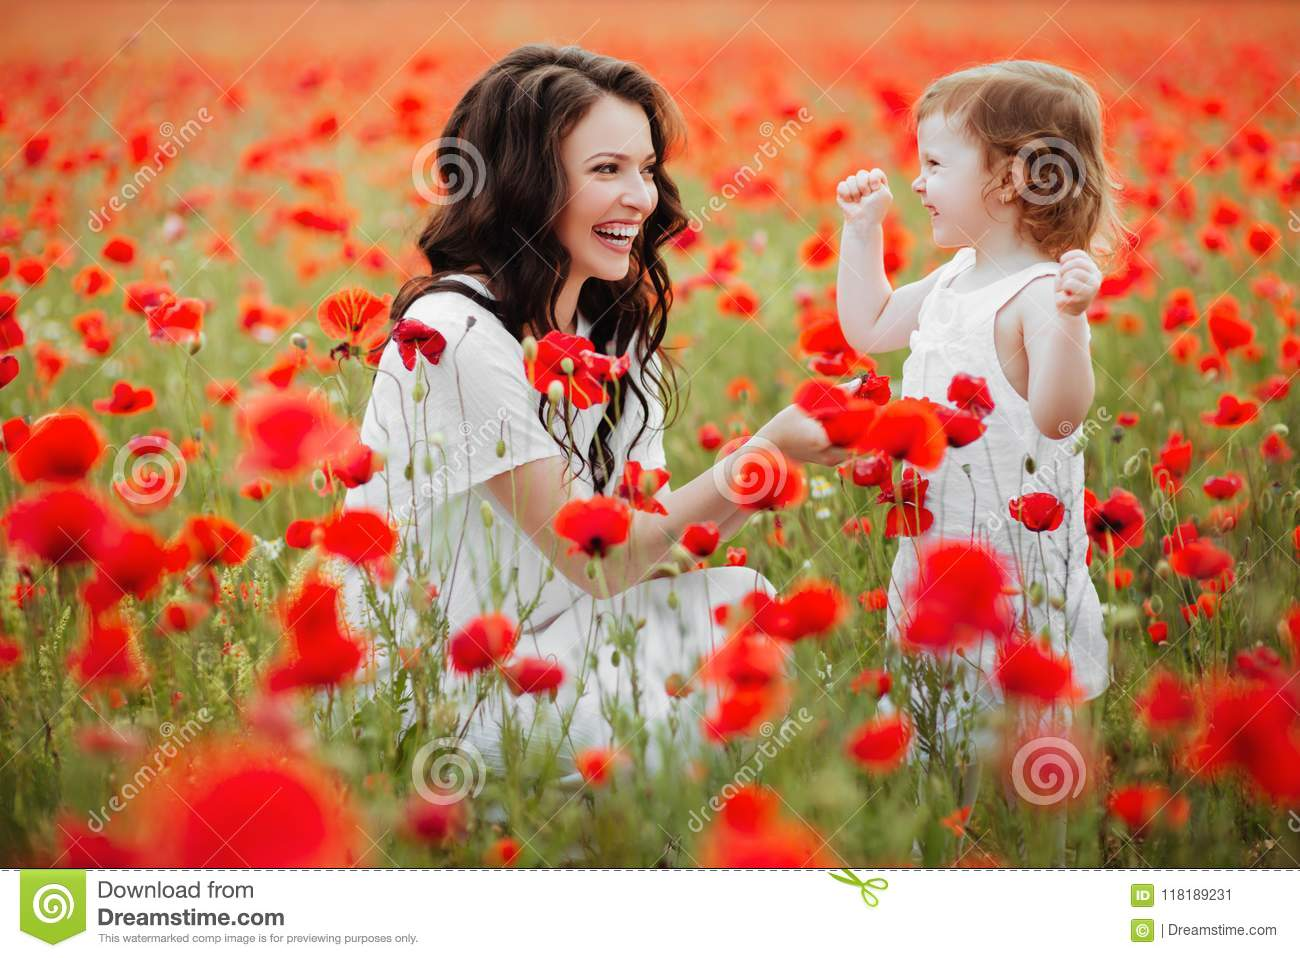 Mother and daughter playing in flower field